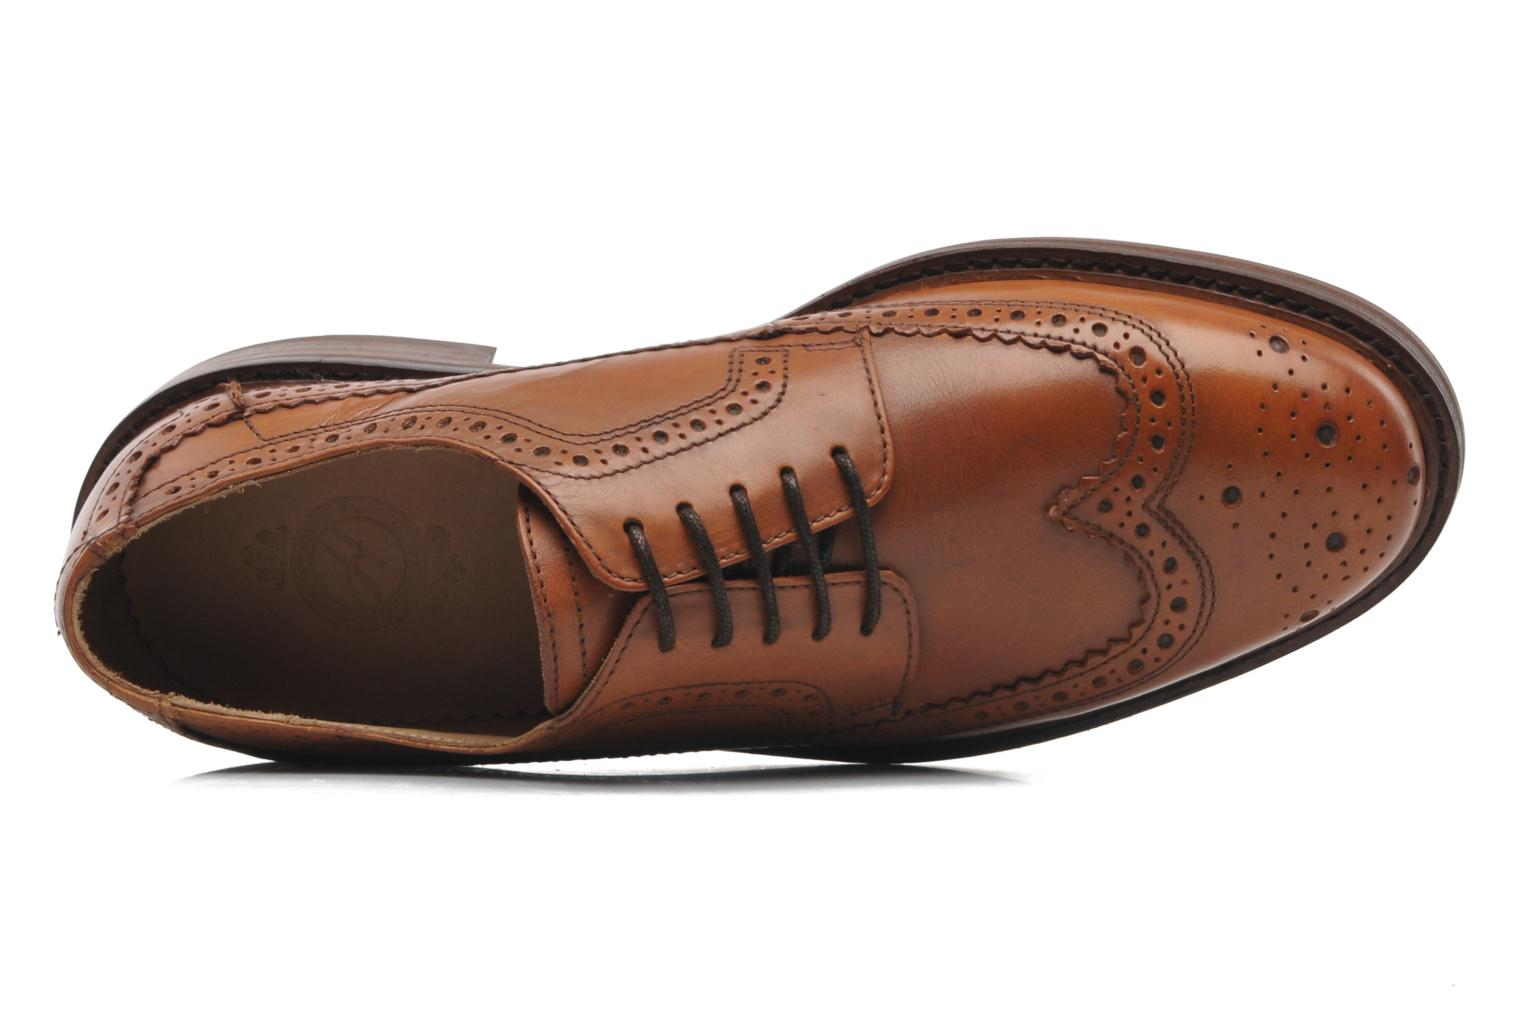 H By Hudson Callaghan Lace-up shoes in Brown at Sarenza.co ...